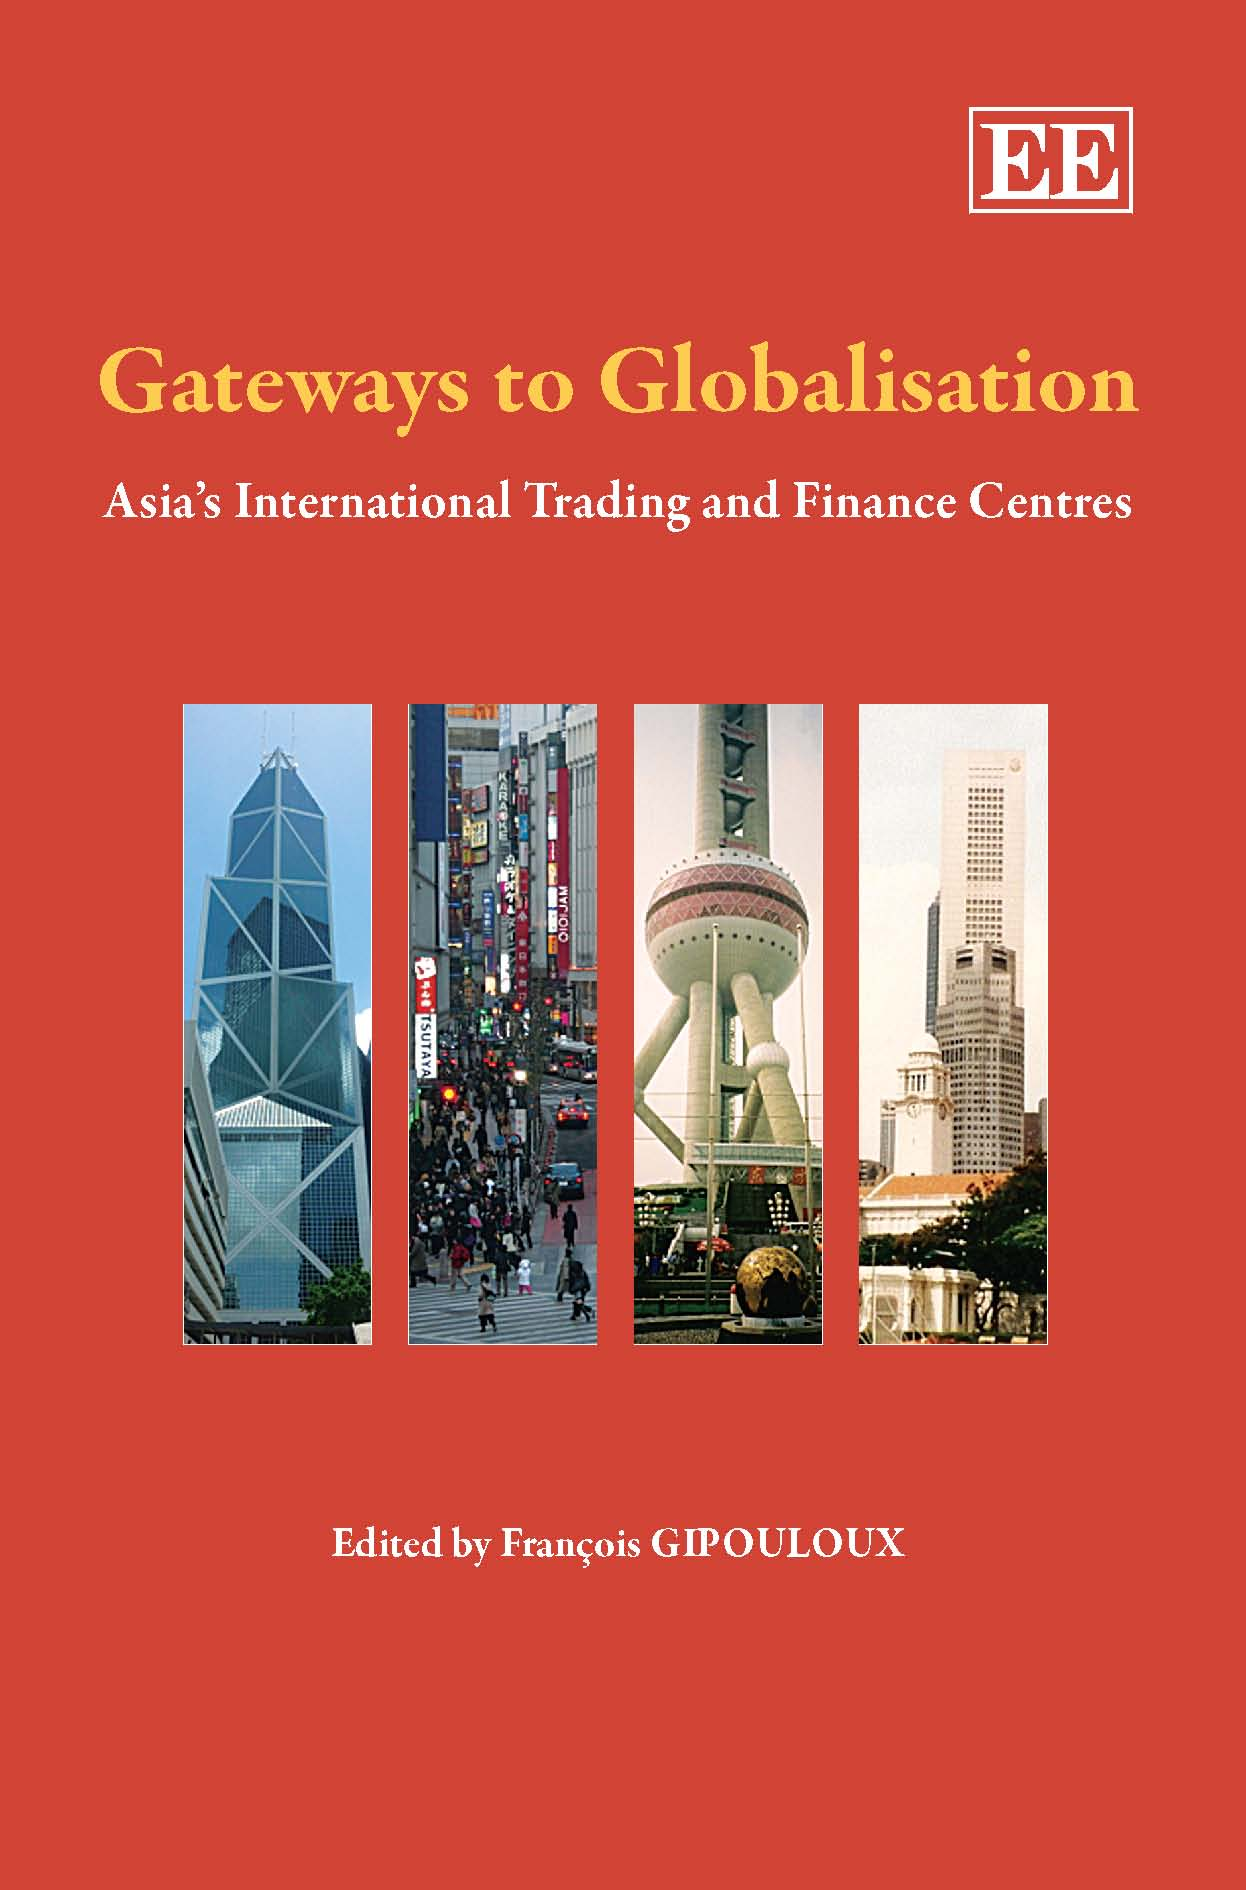 Gateways to Globalisation